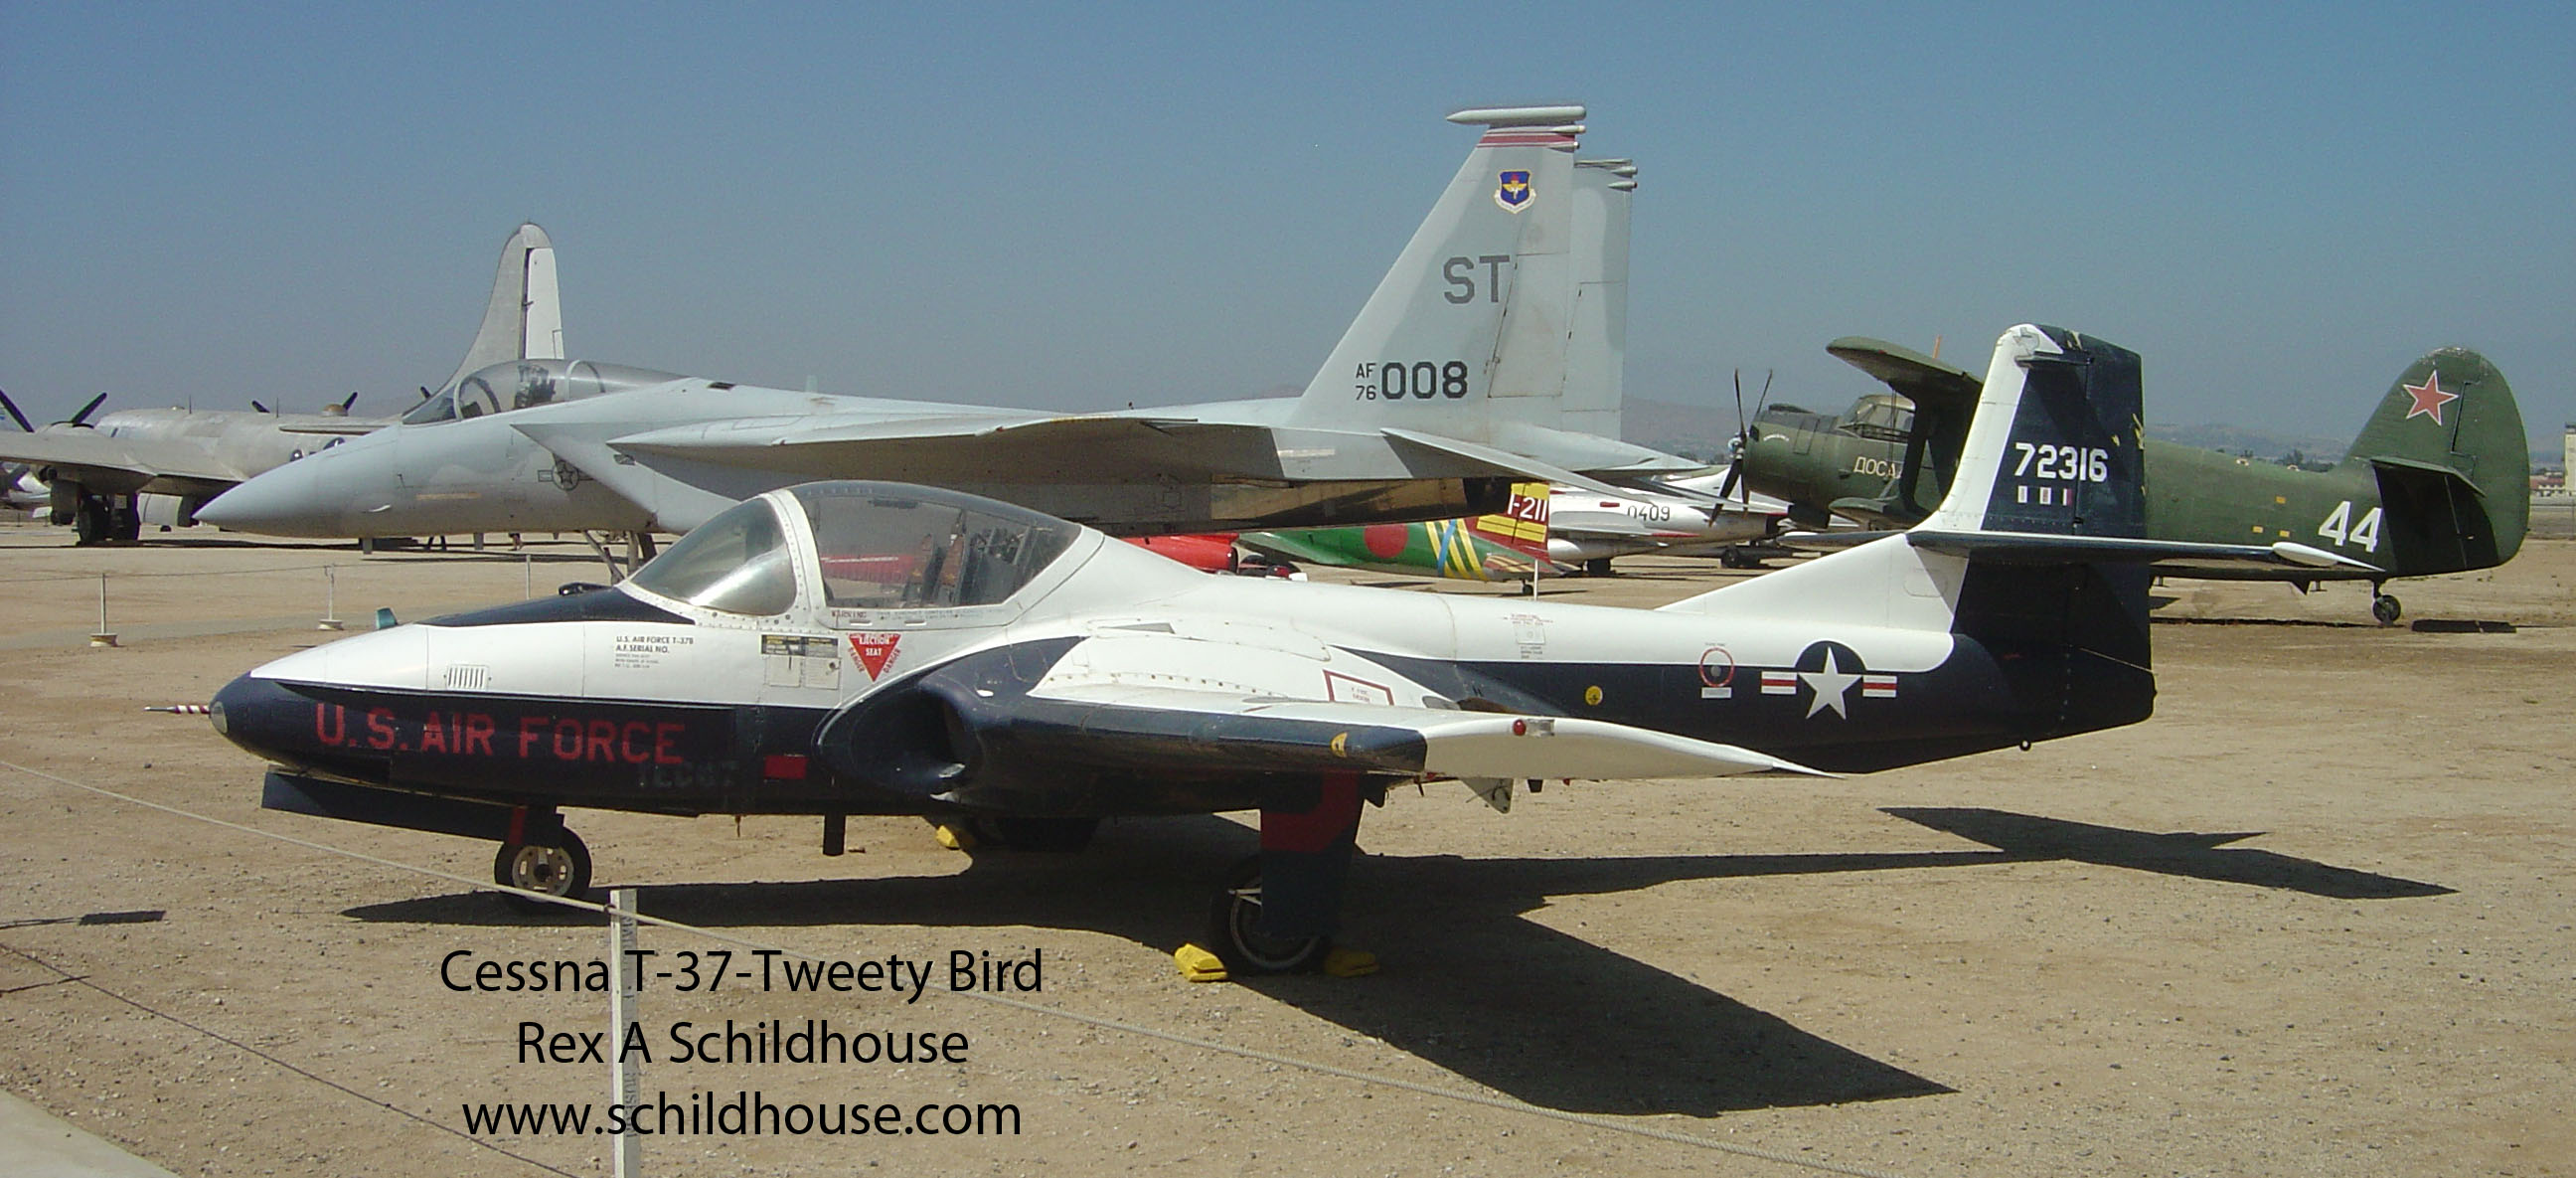 Cessna T-37 Tweety Bird